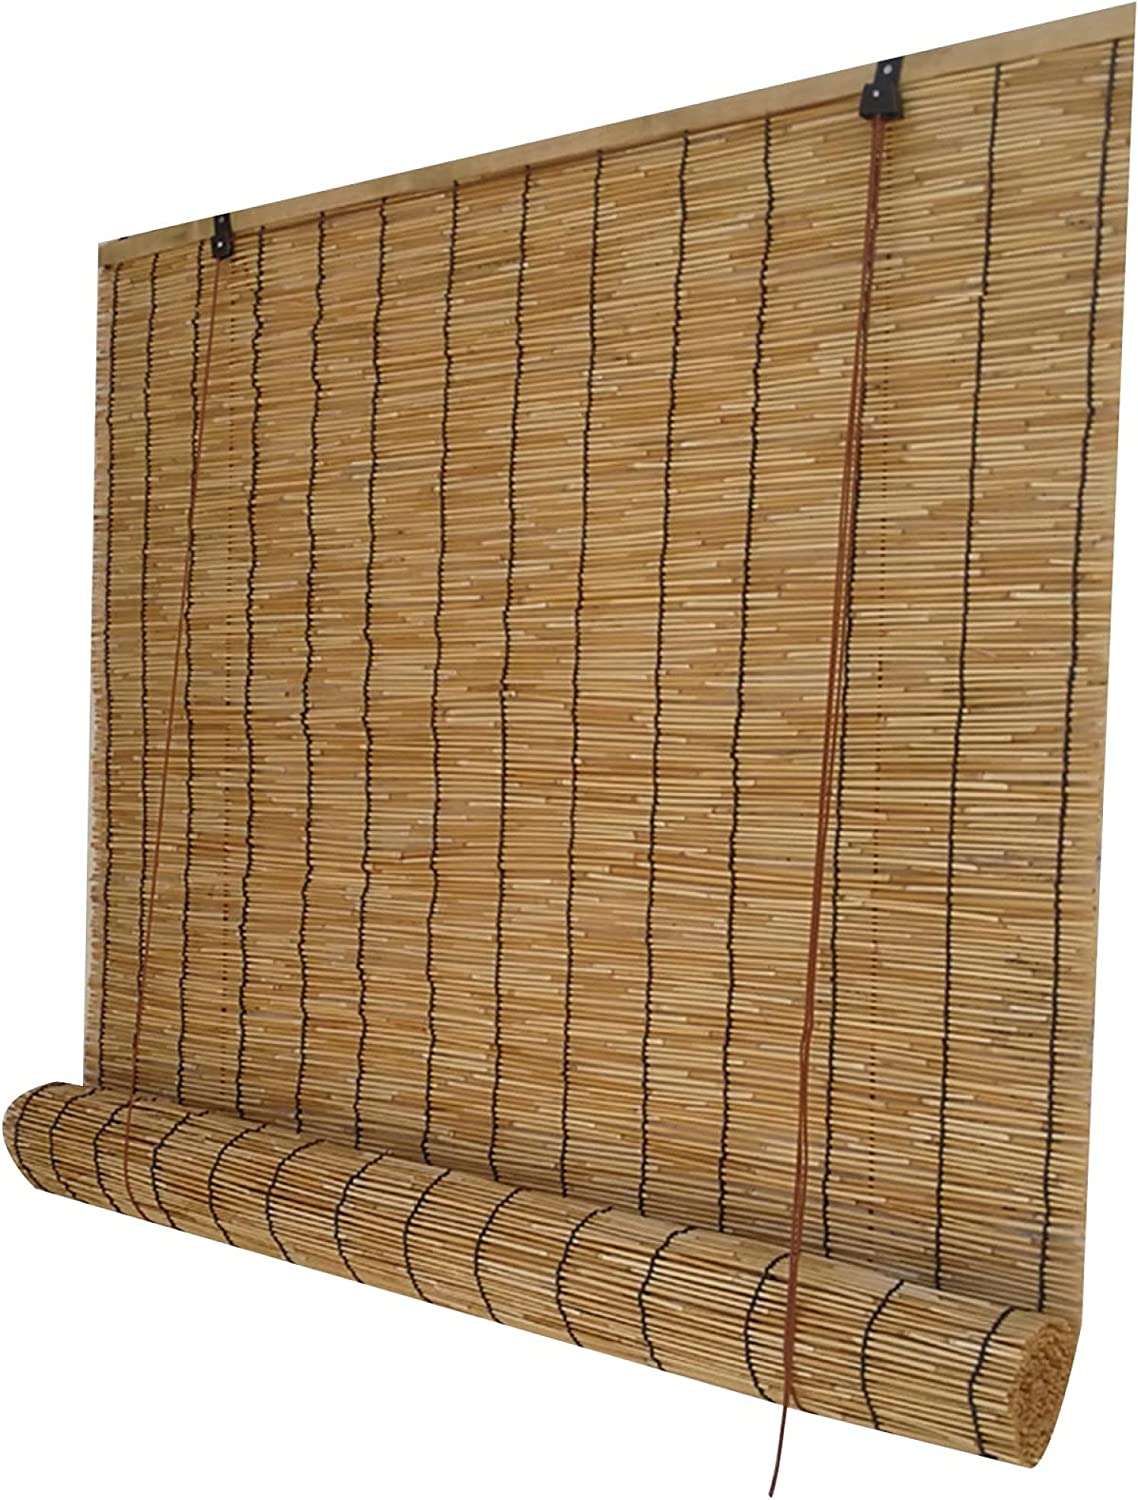 Natural Reed Curtain Household Fixed price for sale Fort Worth Mall Bamboo Roller Shutter Retro Dec